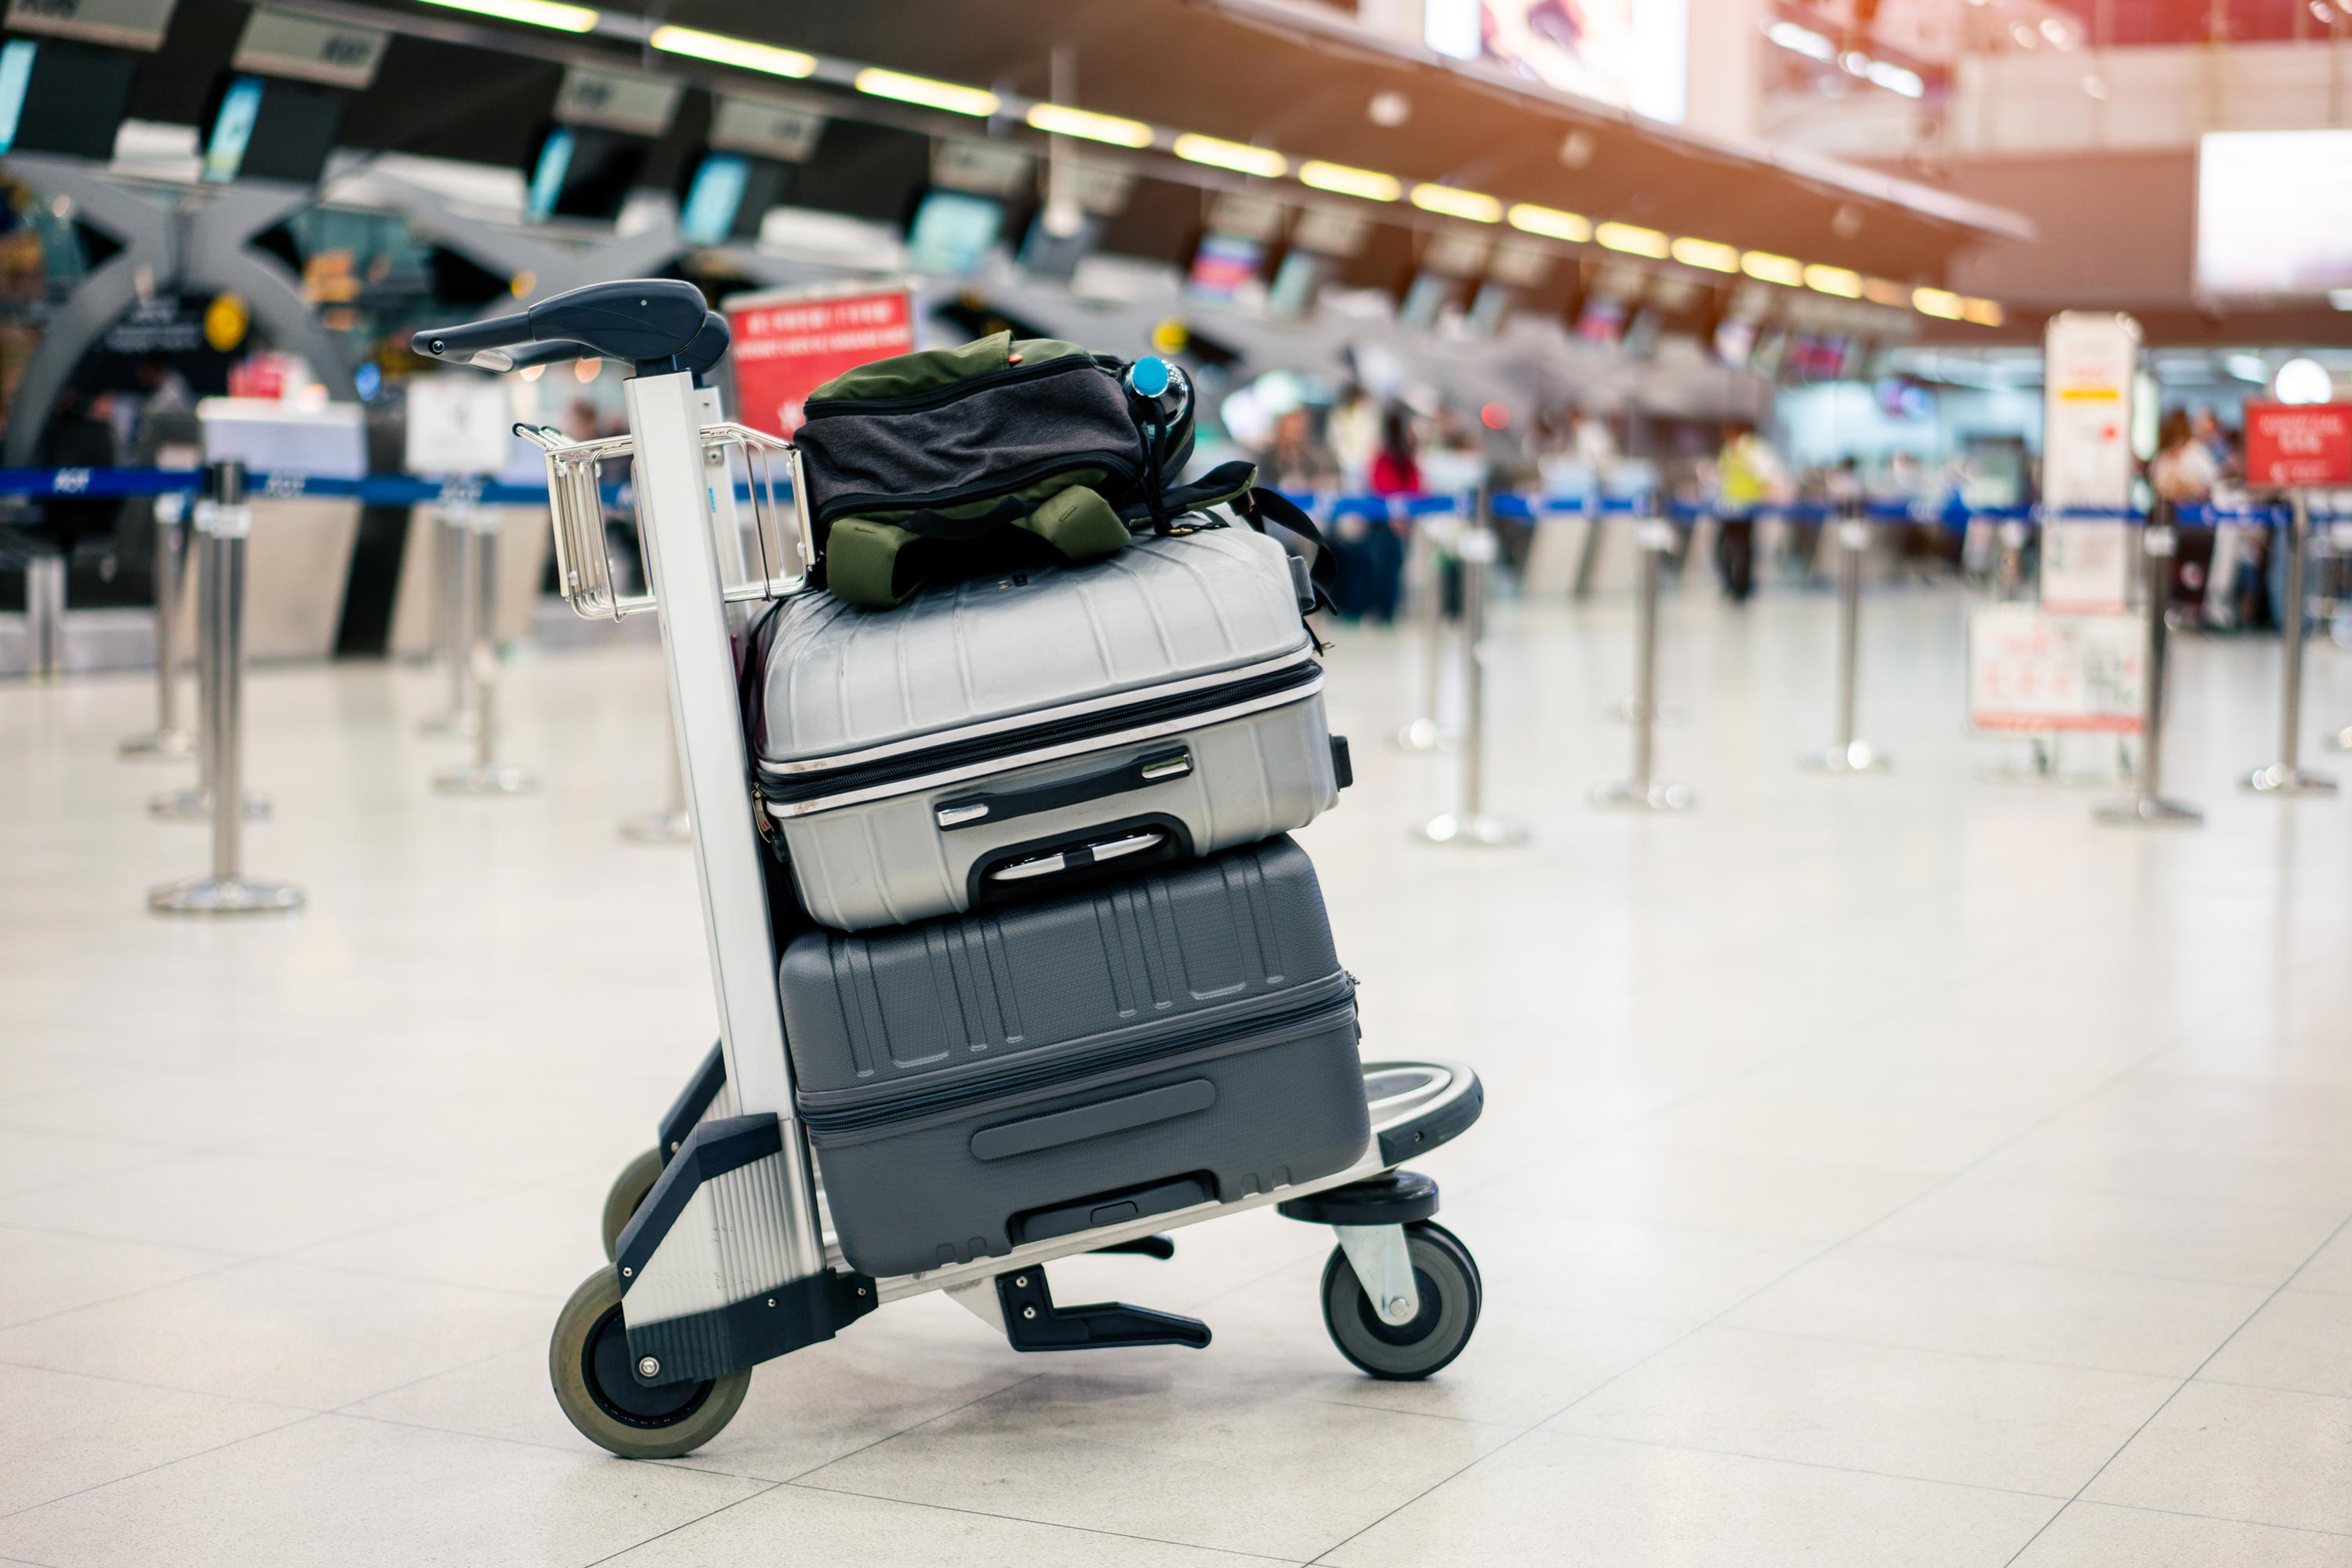 Get and extra piece of luggage for $1